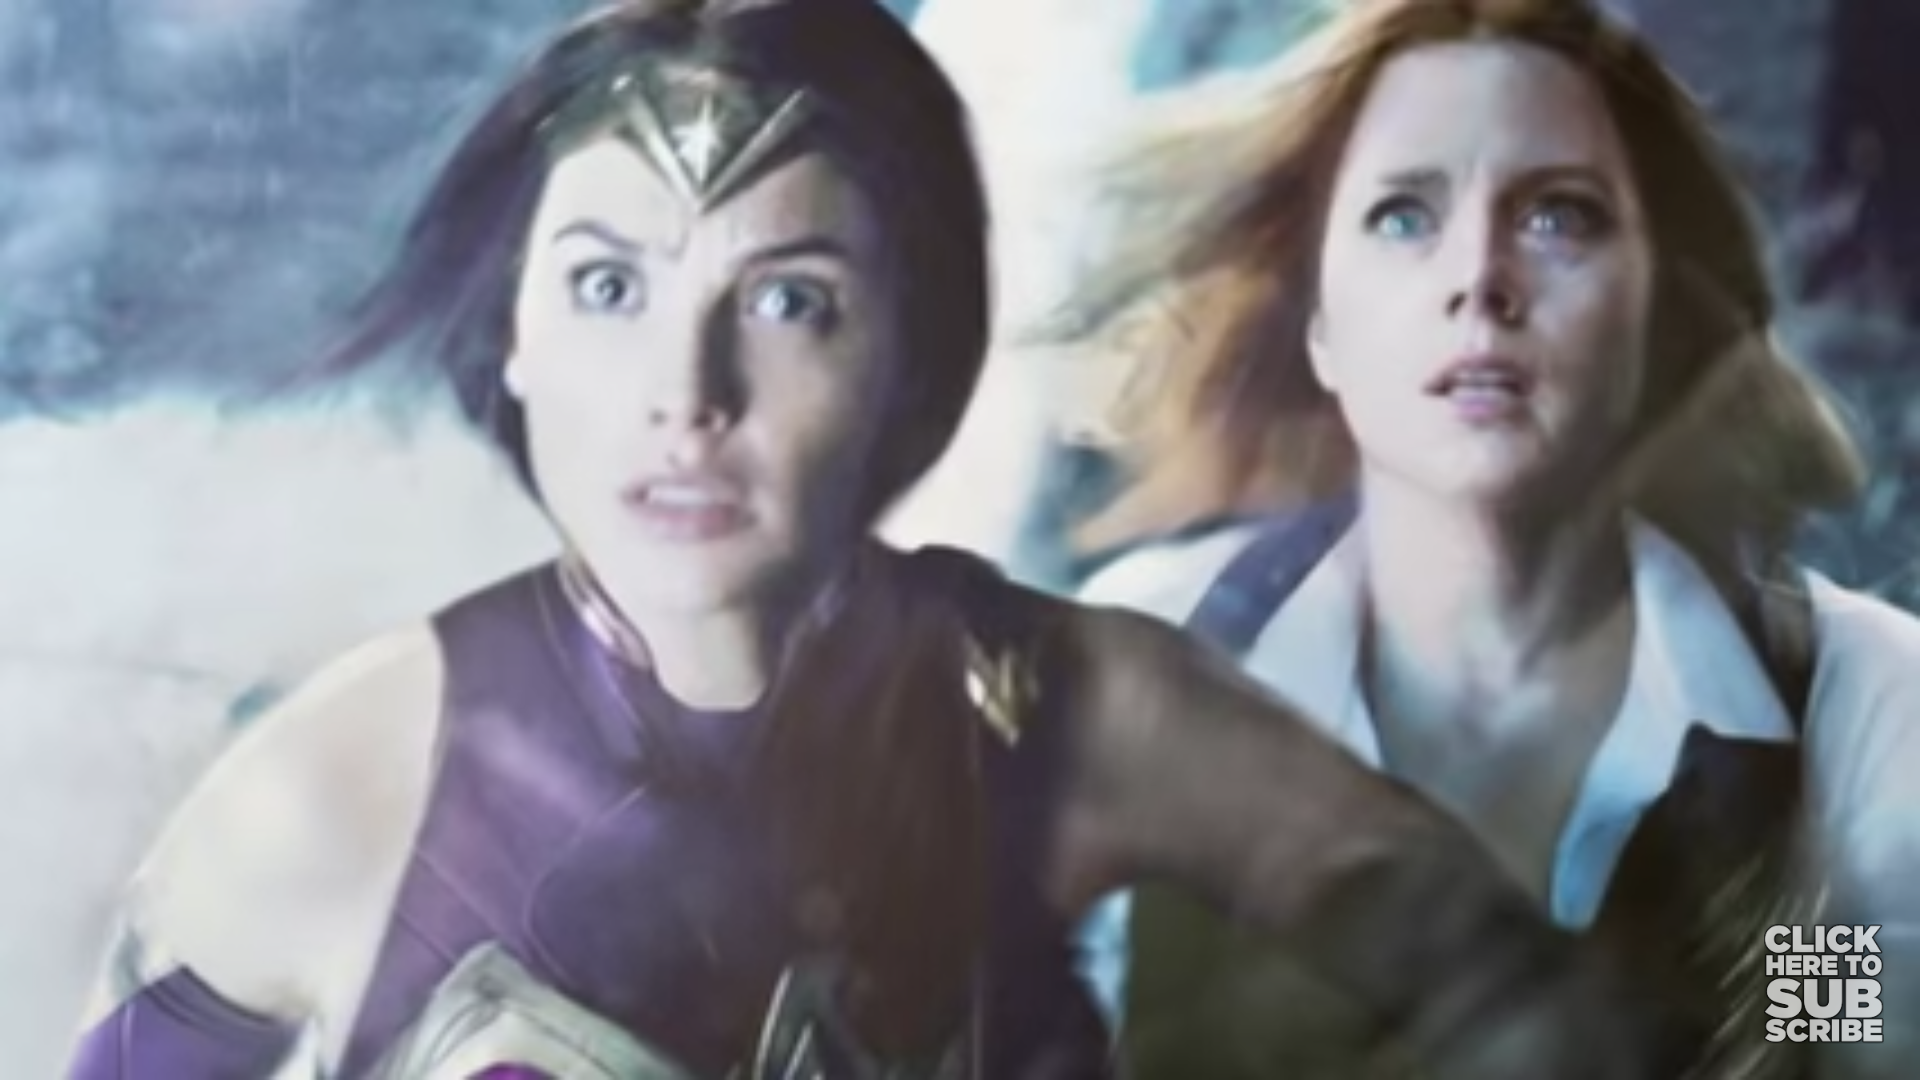 I saw this in a New Rockstars video. Gal has on the DCAU suit. Is this image real? Where's it from?